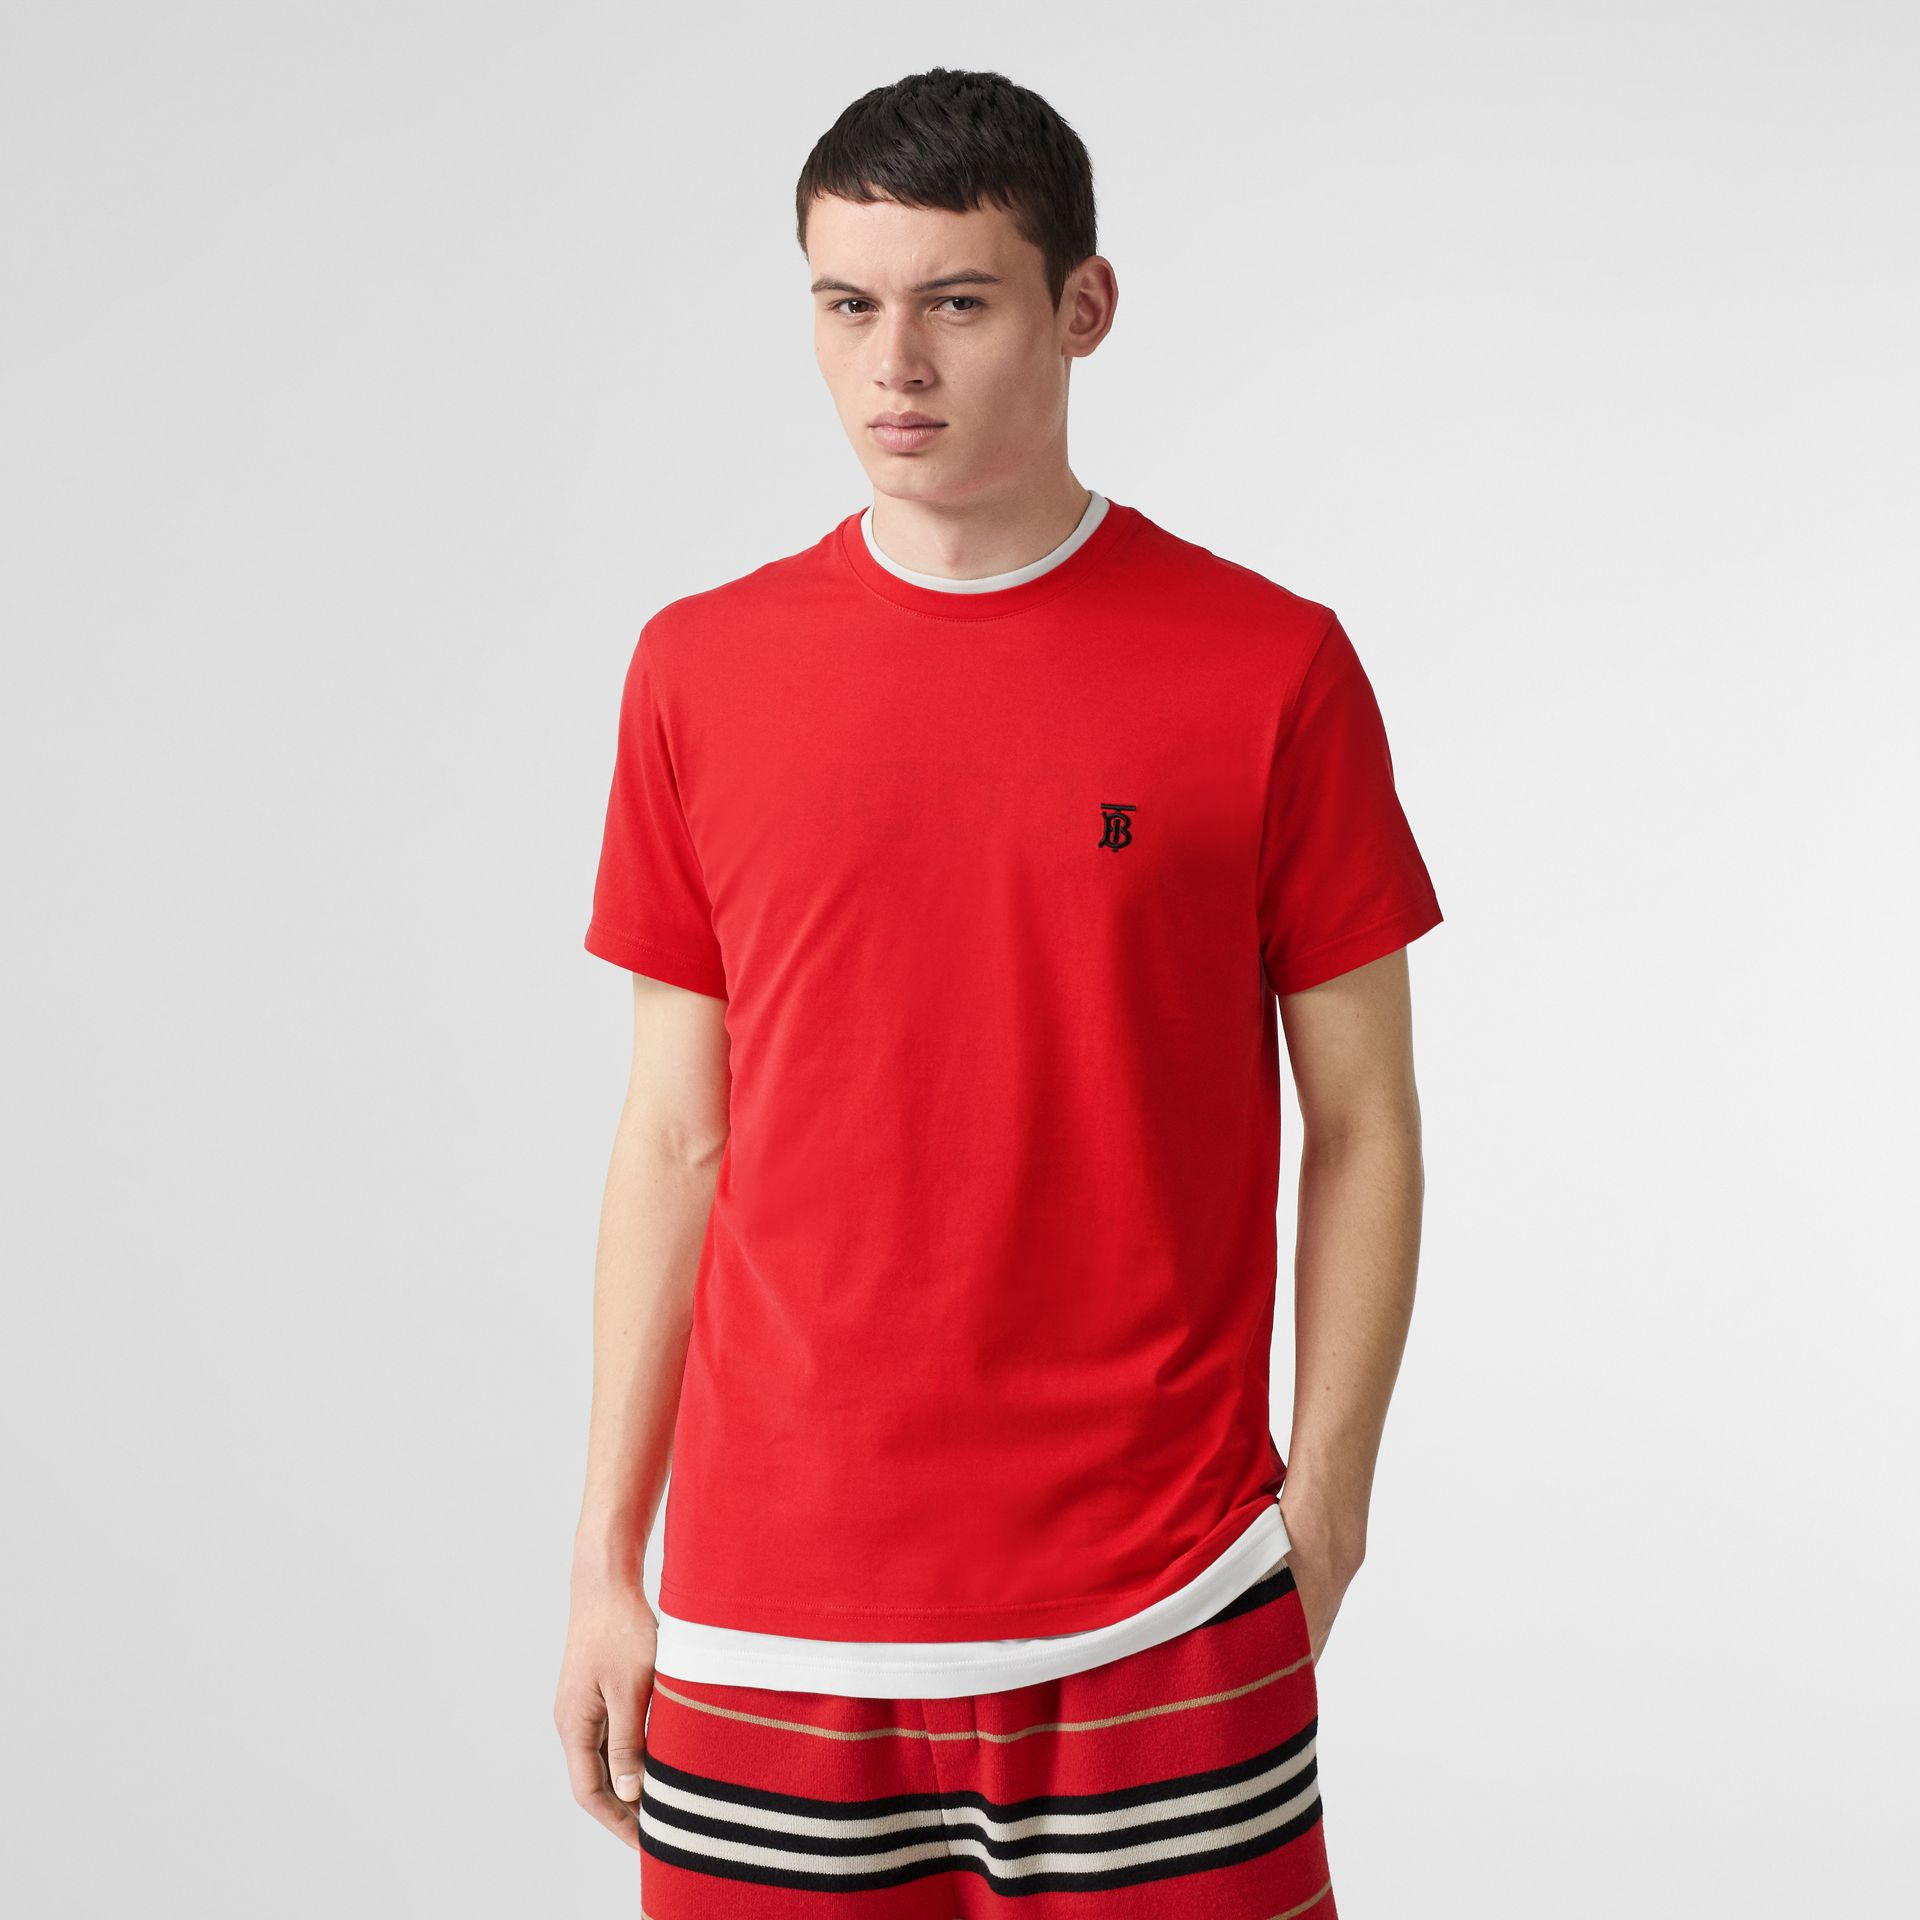 Monogram Motif Cotton T-shirt in Bright Red - Men | Burberry - gallery image 4